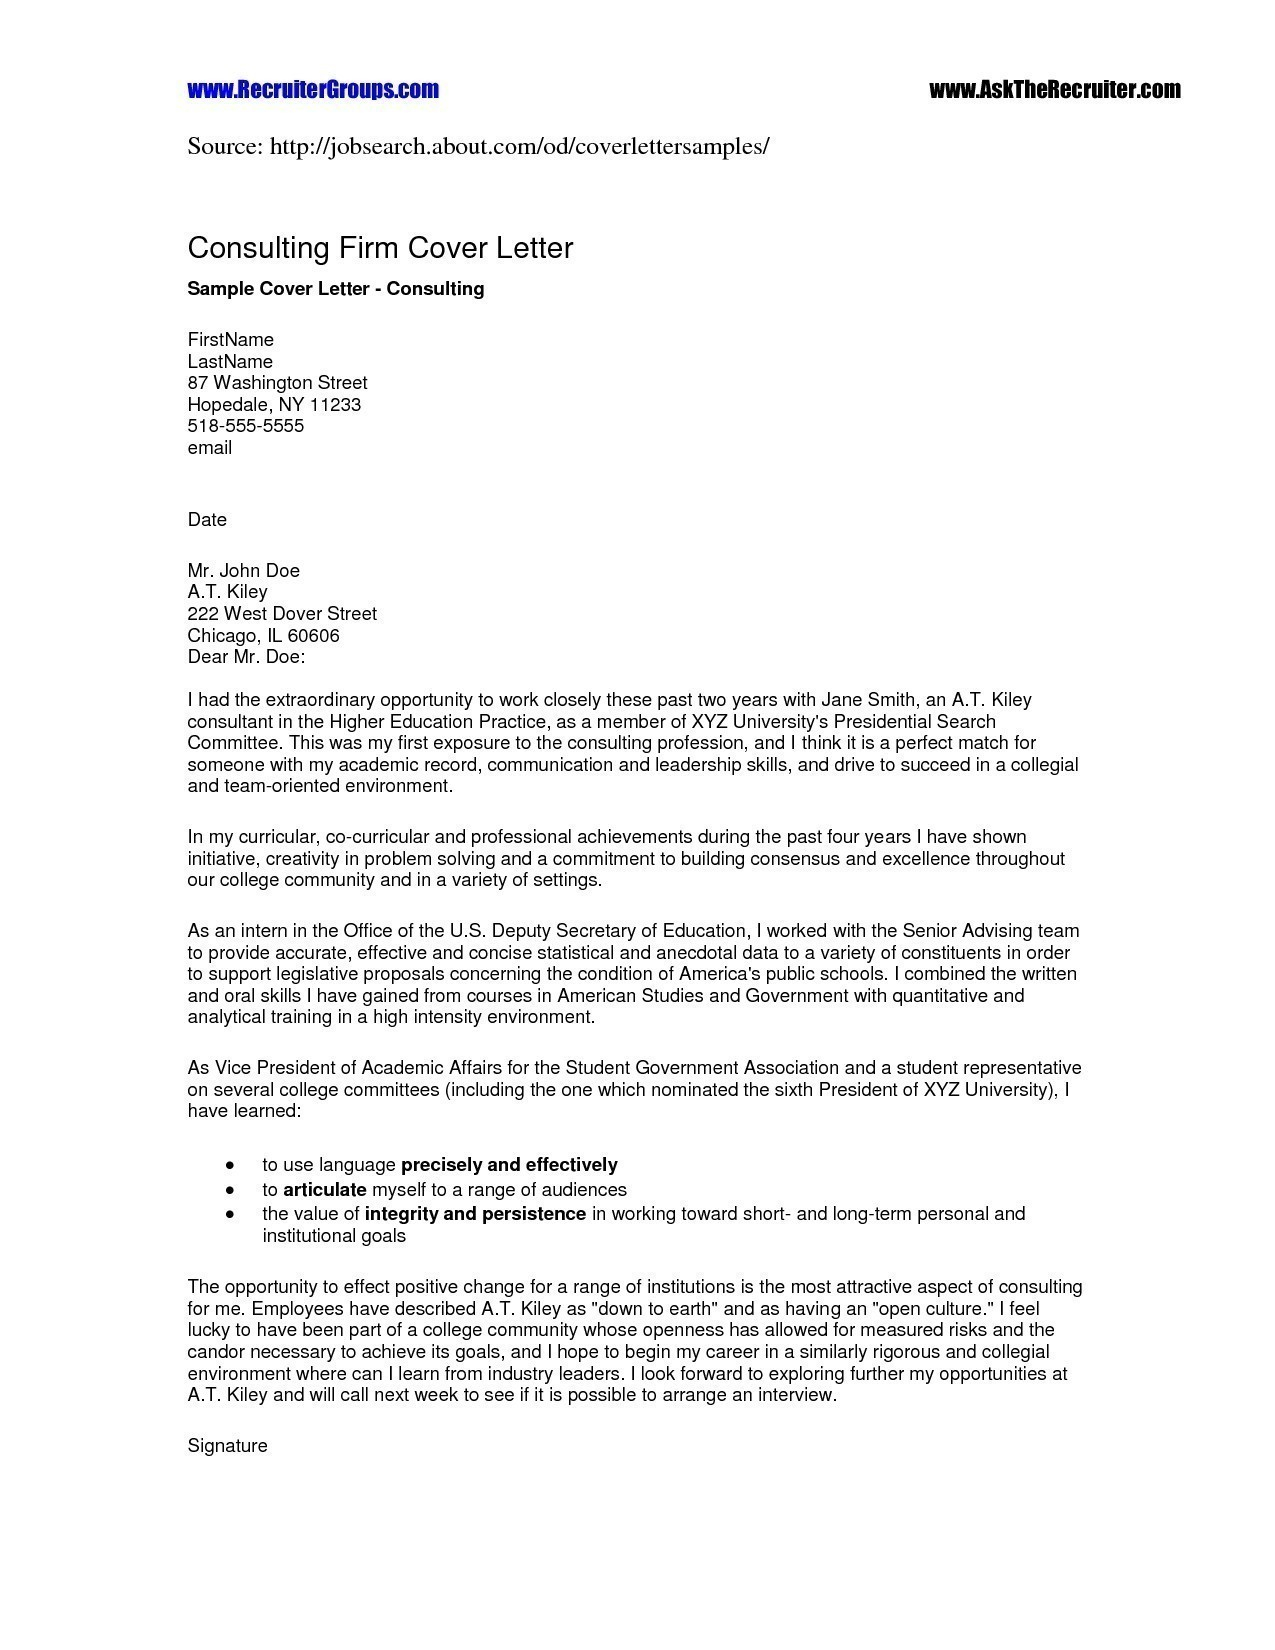 Official Offer Letter Template - How to Write Job Fer Letter Fresh Job Fer Letter Sample Best Job